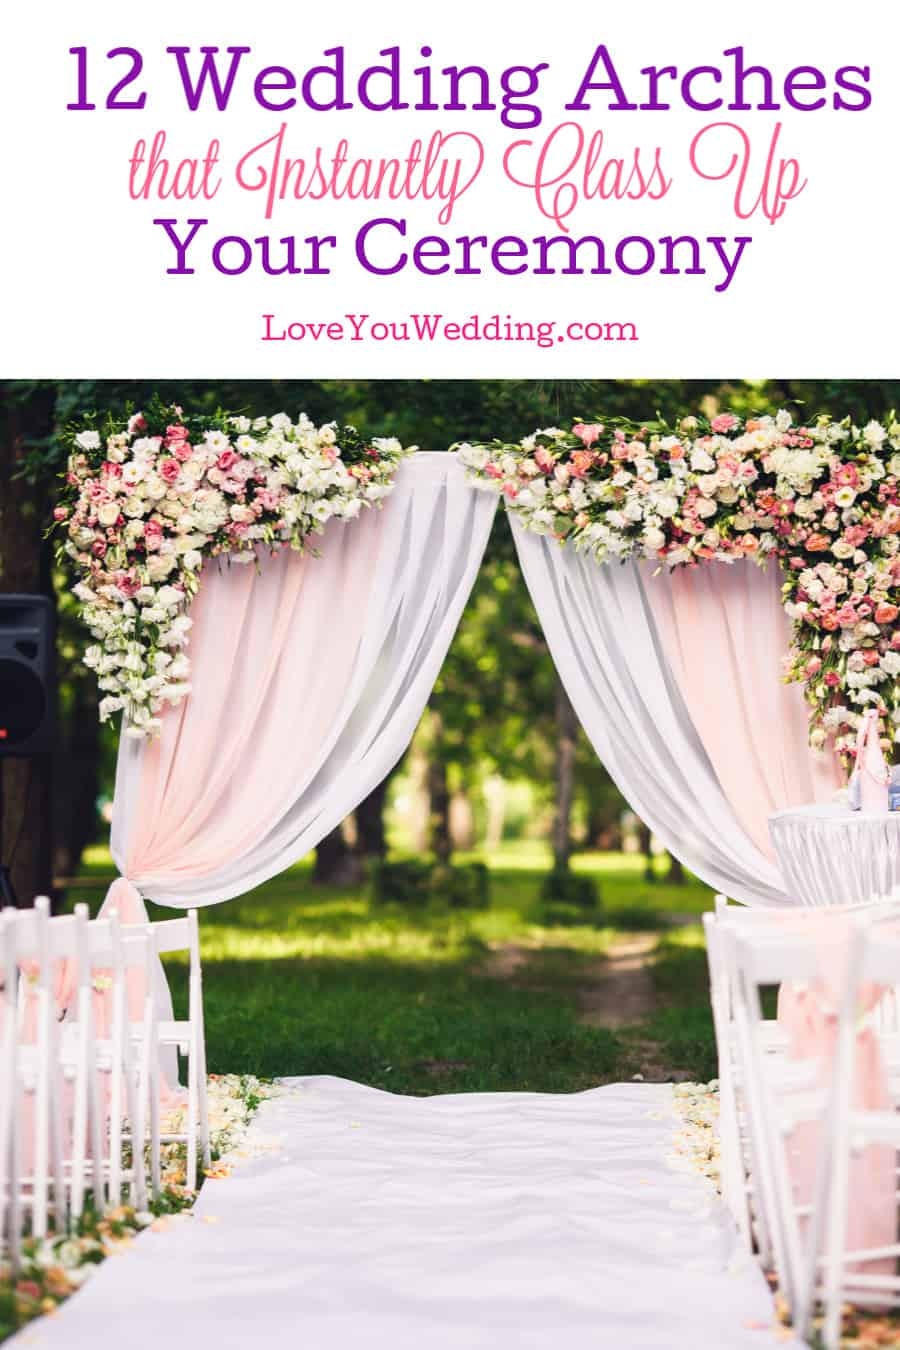 From simple yet elegant to over-the-top stunning, these wedding arch ideas add a whole new dimension of class to your ceremony.